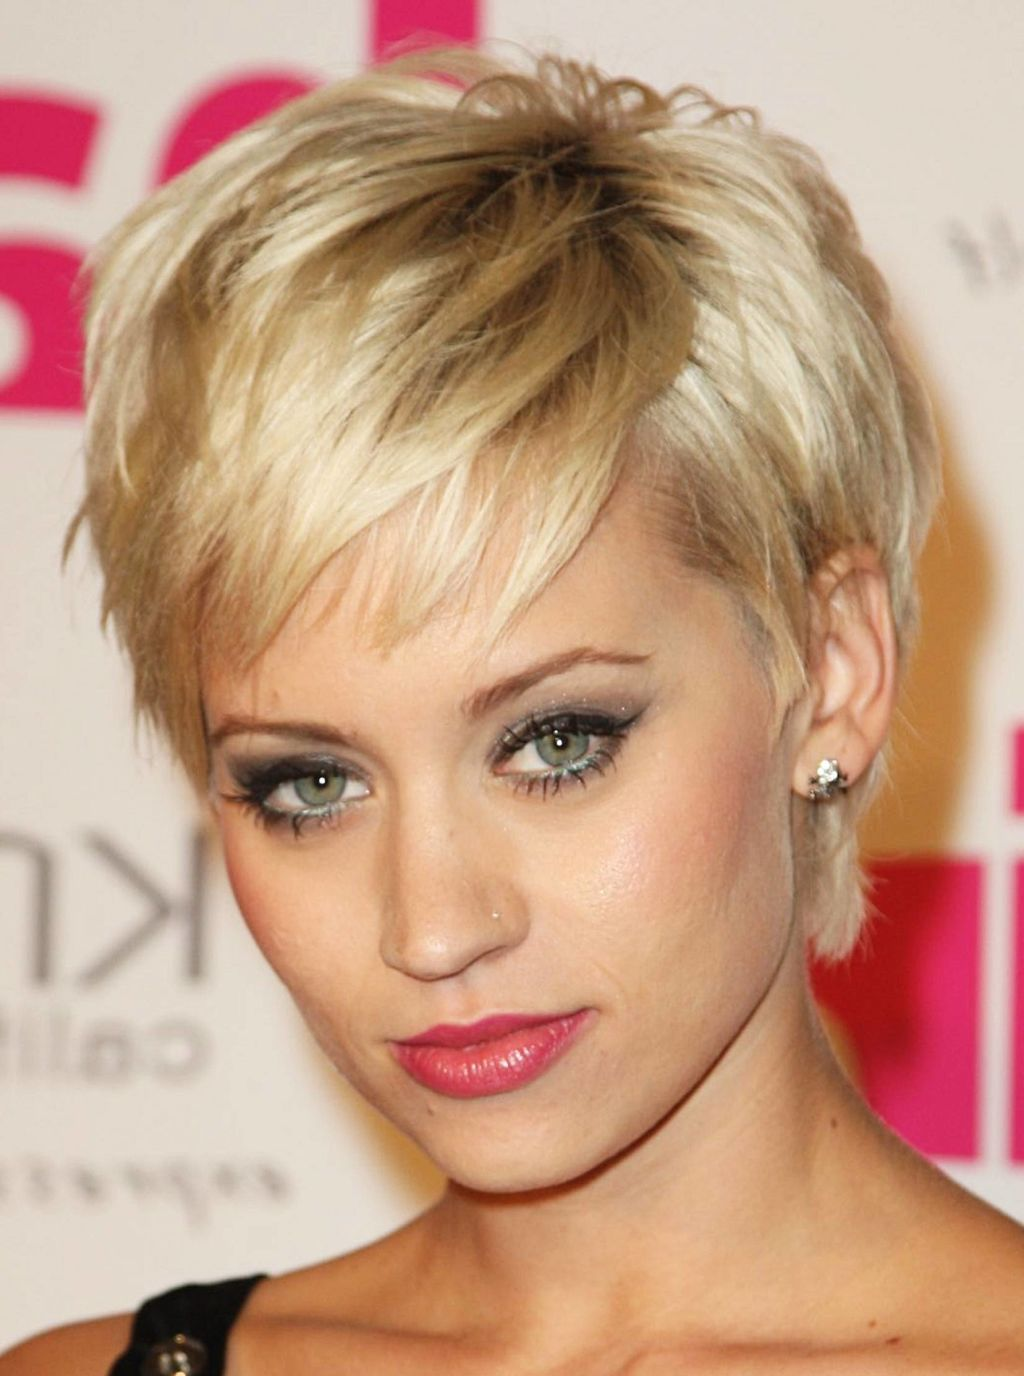 Short hairstyles trendy short hairstyles for women - 10 Photos Of The Trendy Short Hairstyles